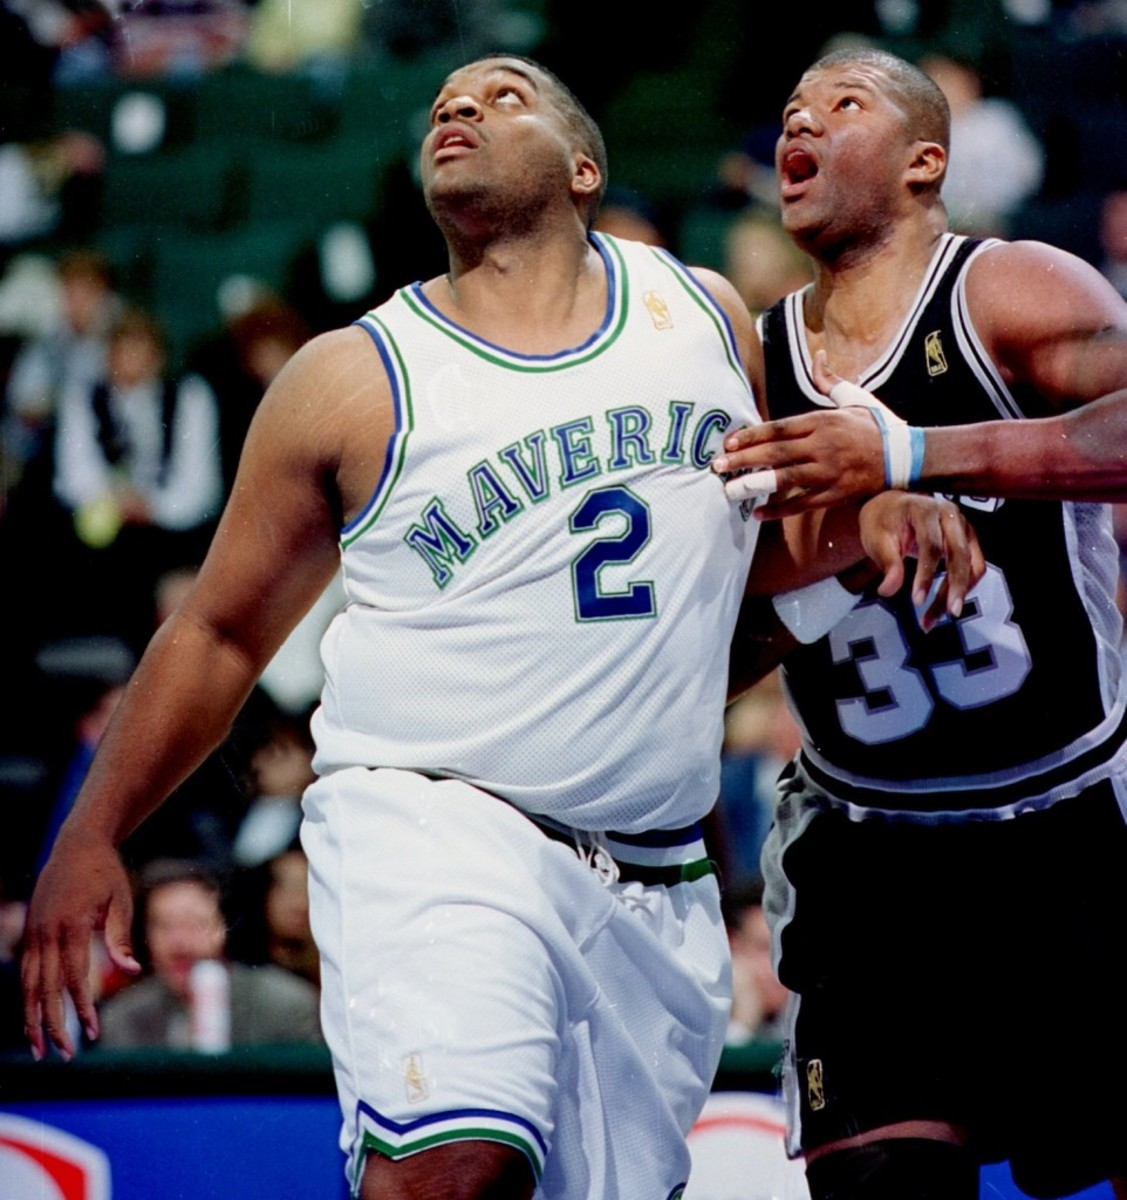 ORG XMIT:  Dallas Mavericks' #2 Oliver Miller in action against the San Antonio Spurs on 11/26/96. Photographer: Louis DeLuca  Credit: 97835    Date: 19961129